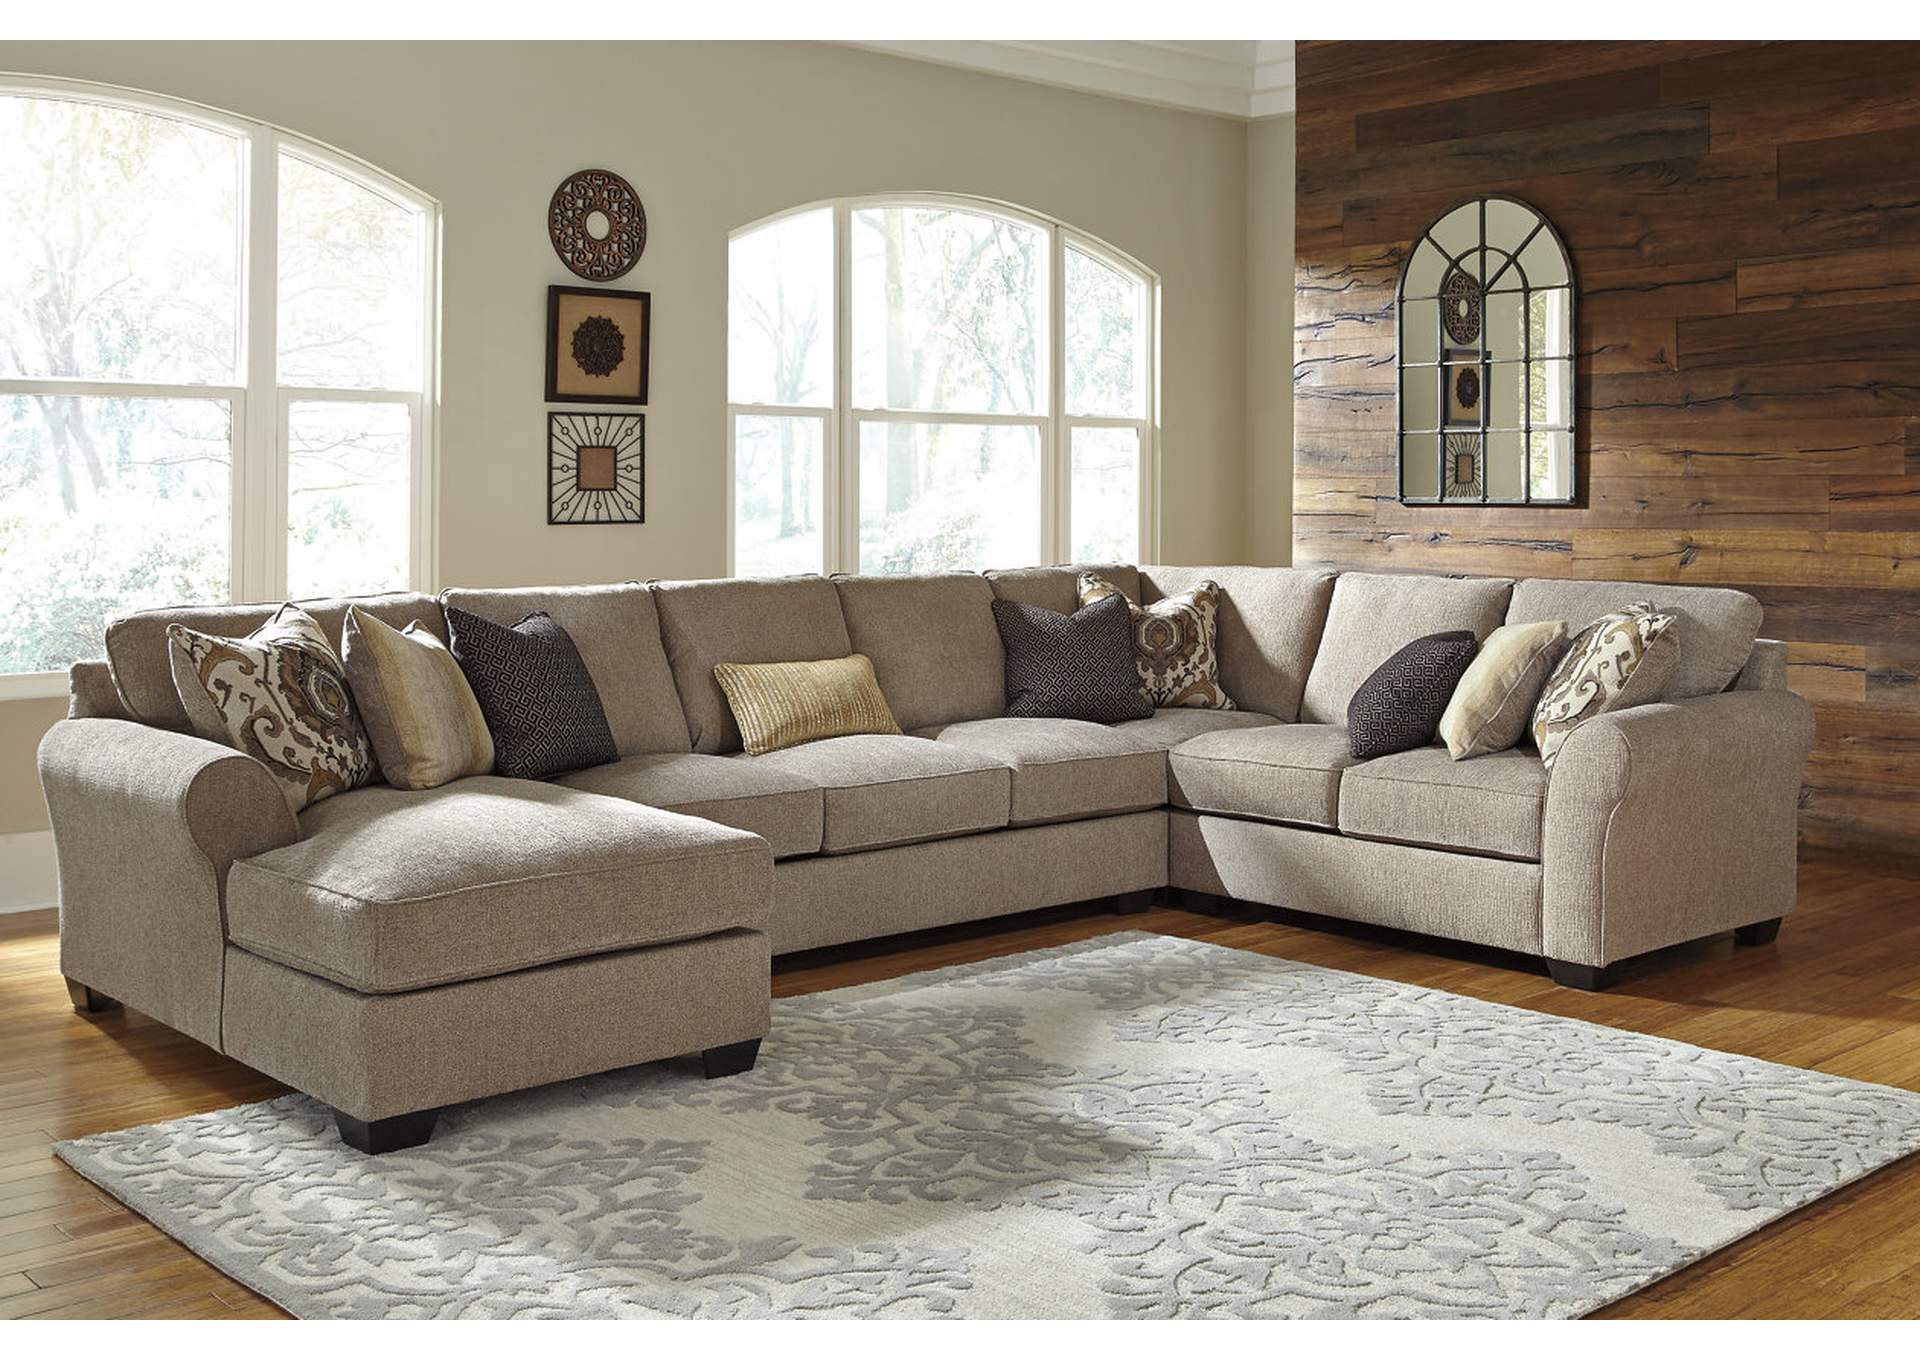 Pantomine Driftwood 4 Piece LAF Chaise Sectional,Benchcraft